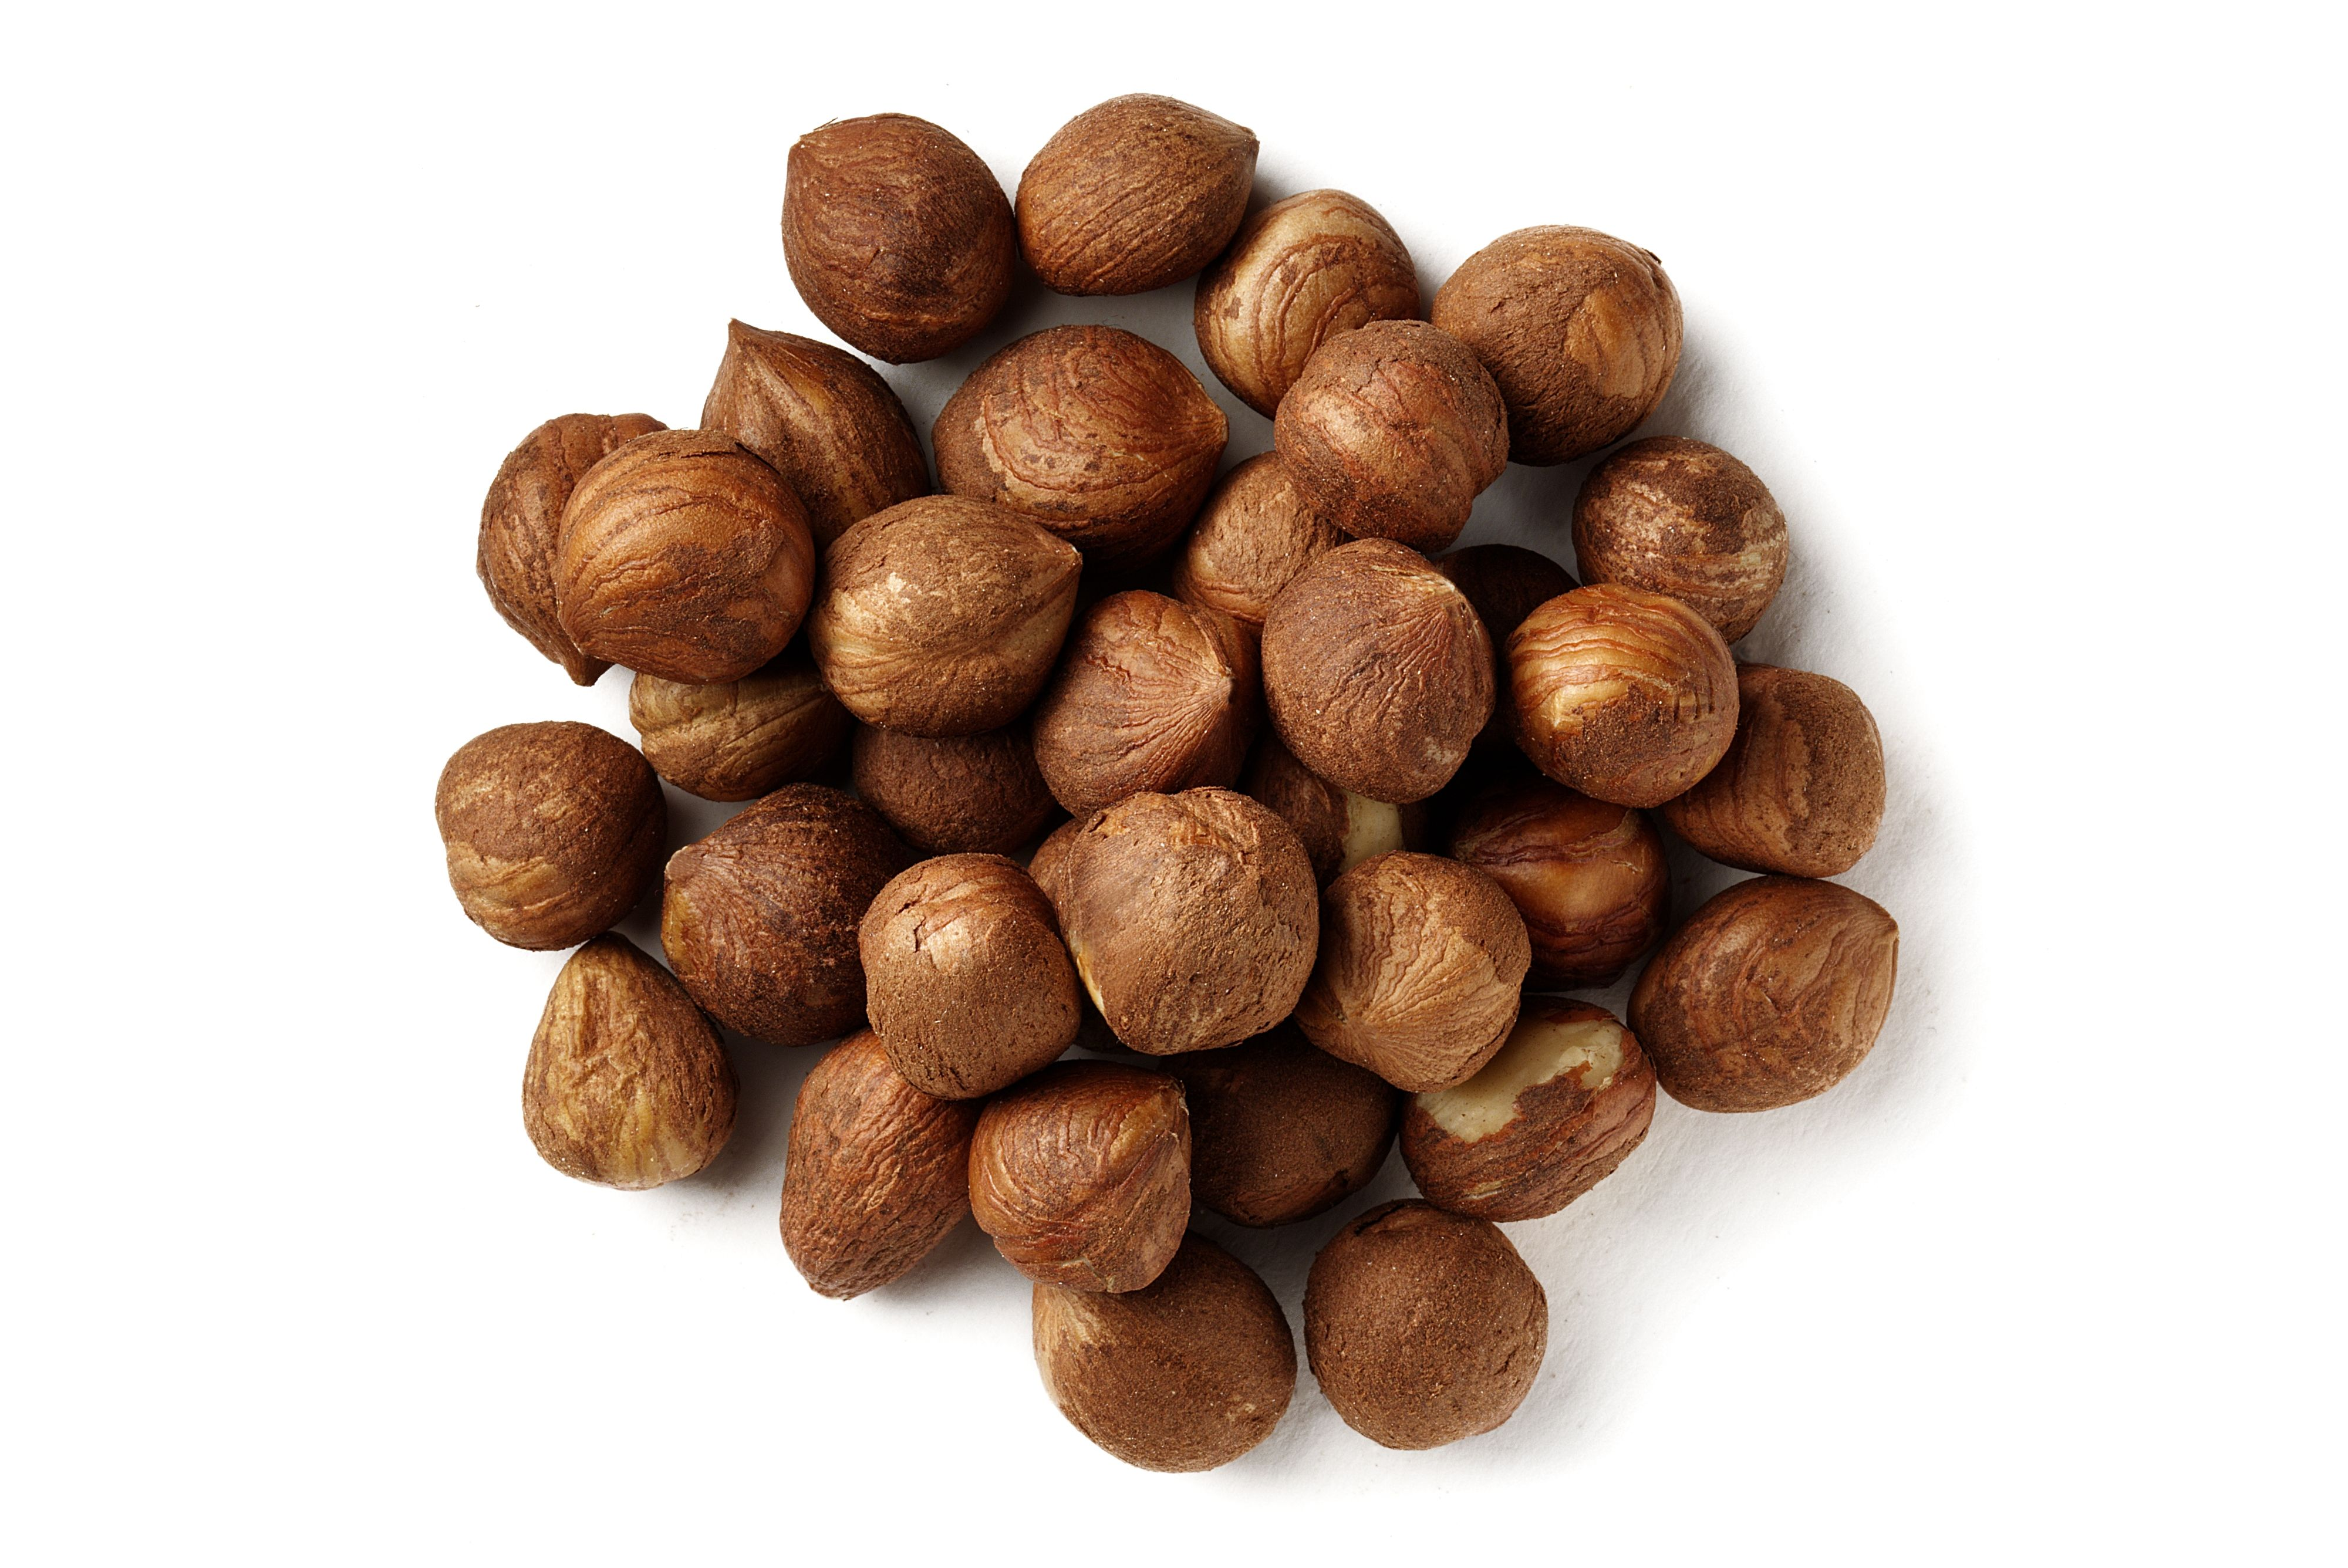 Eating Hazelnuts May Help Improve Vitamin E Status in Older Adults